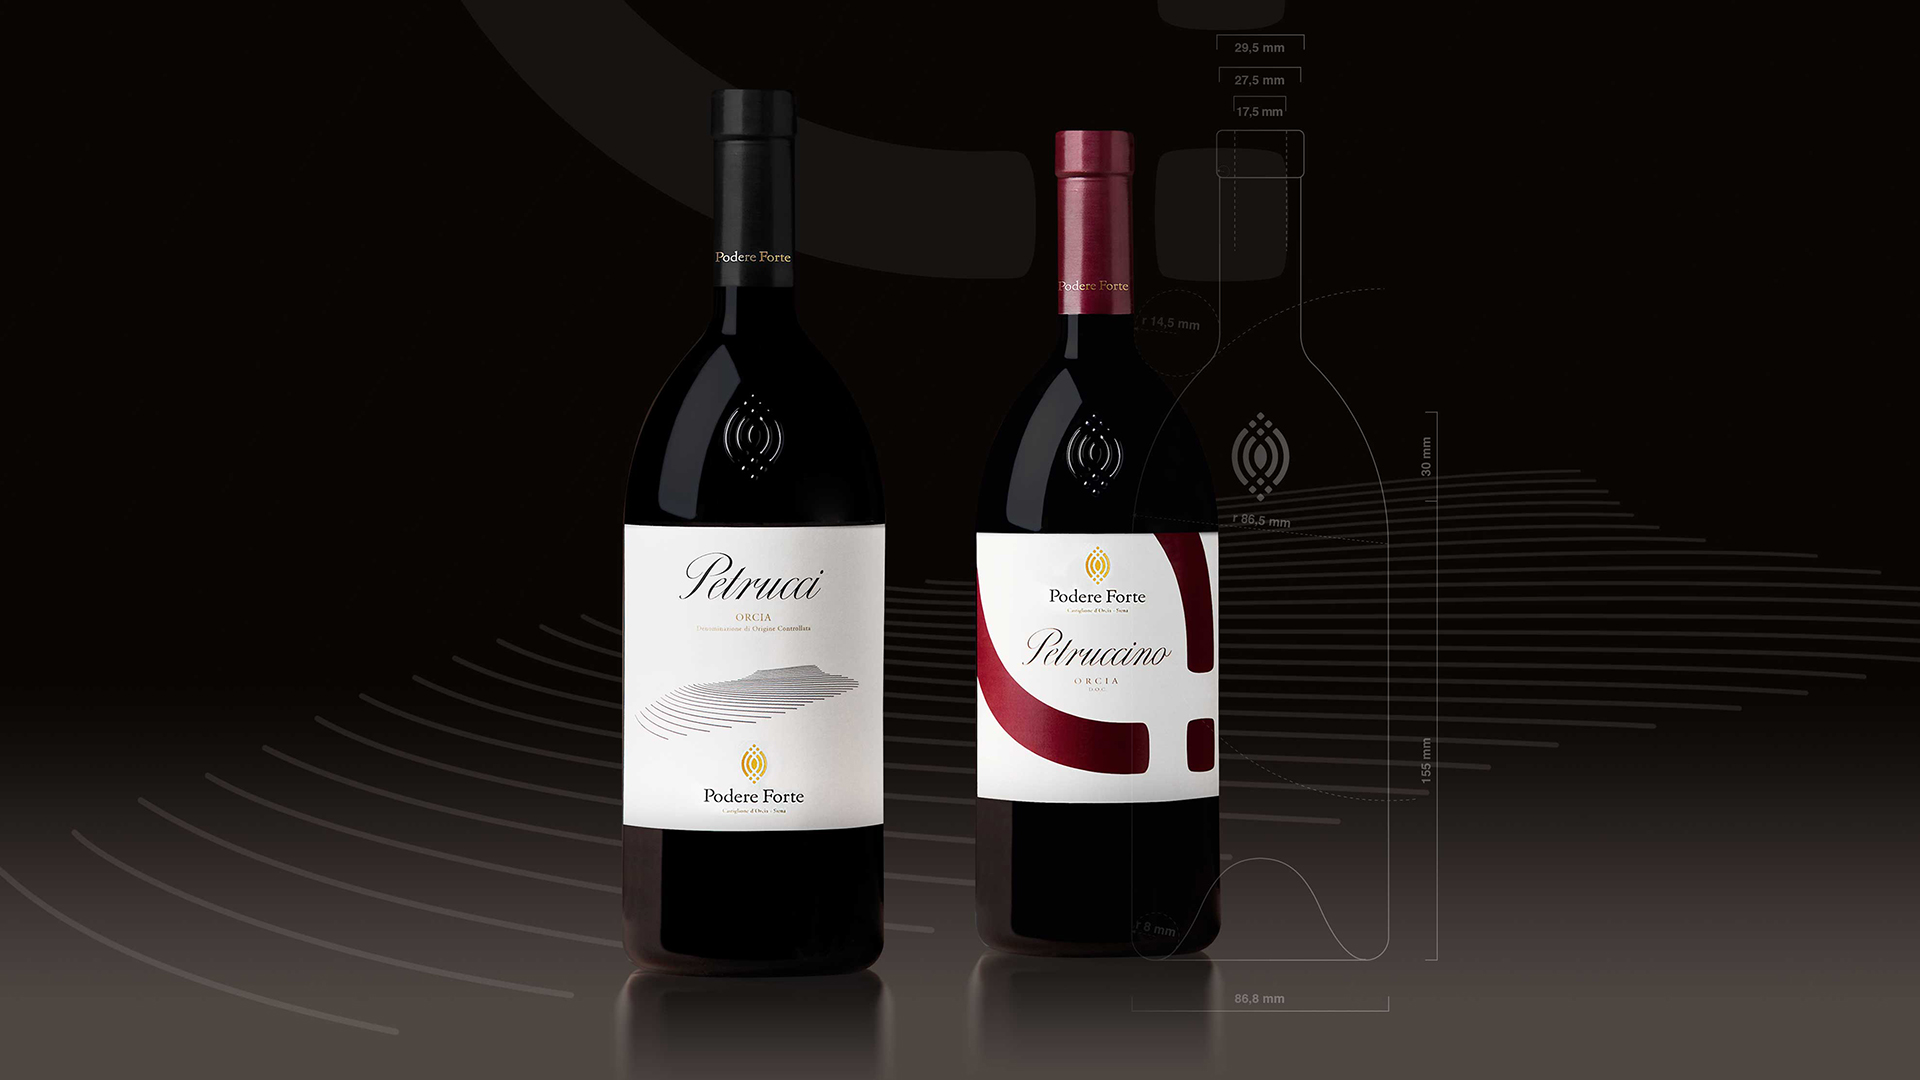 Podere Forte vino packaging